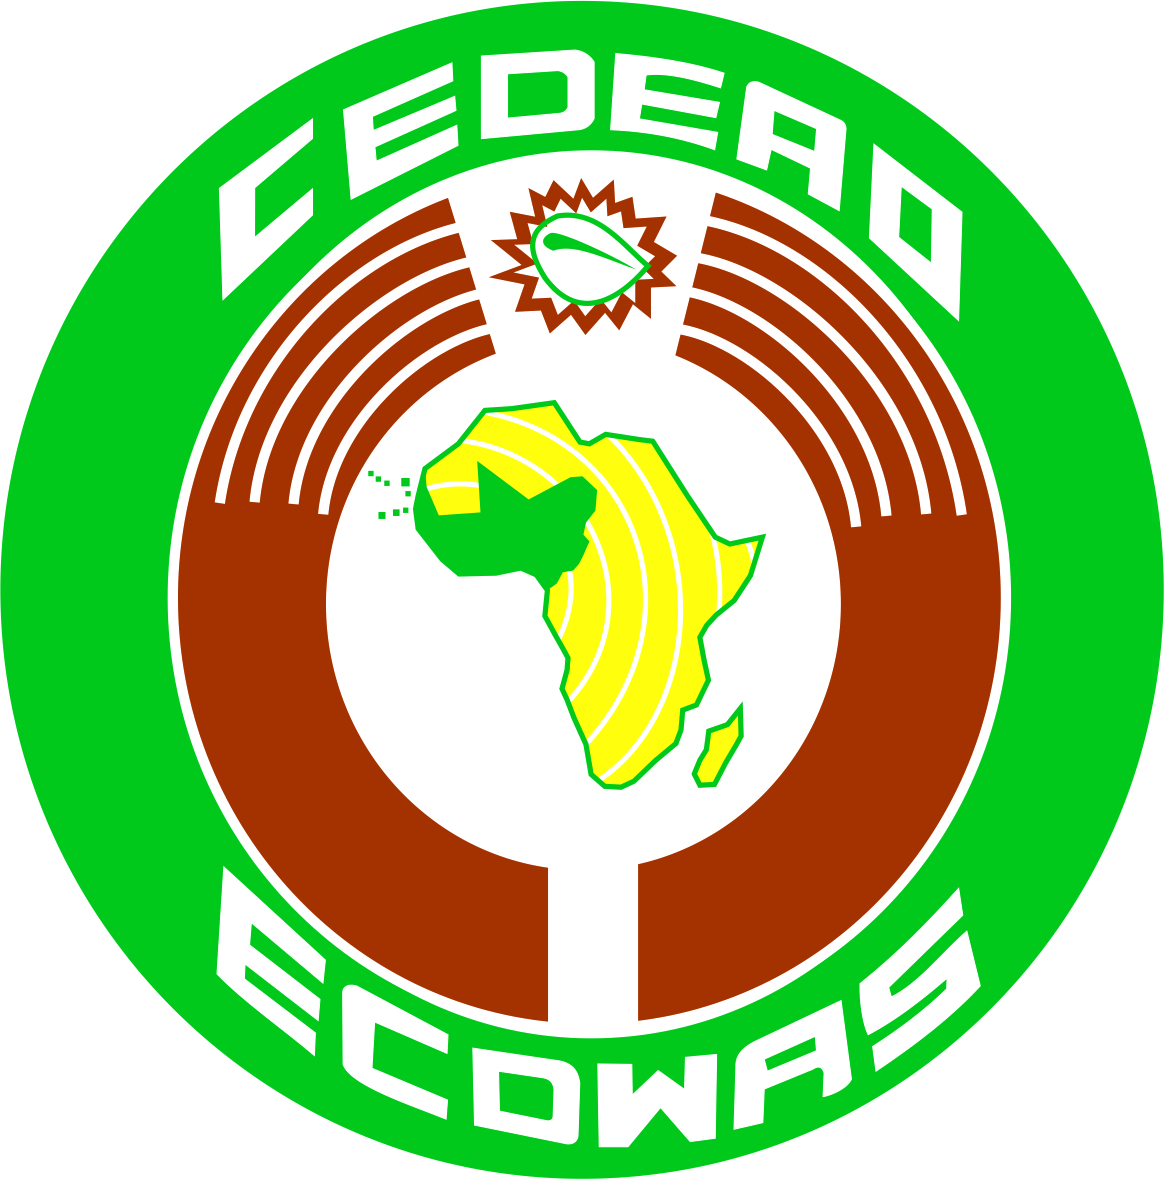 the economic community of west african states ecowas essay 1978] the economic community of west african states (ecowas): an analysis and prospects by bruce zagaris the treaty of lagos, creating the economic community of west african states.